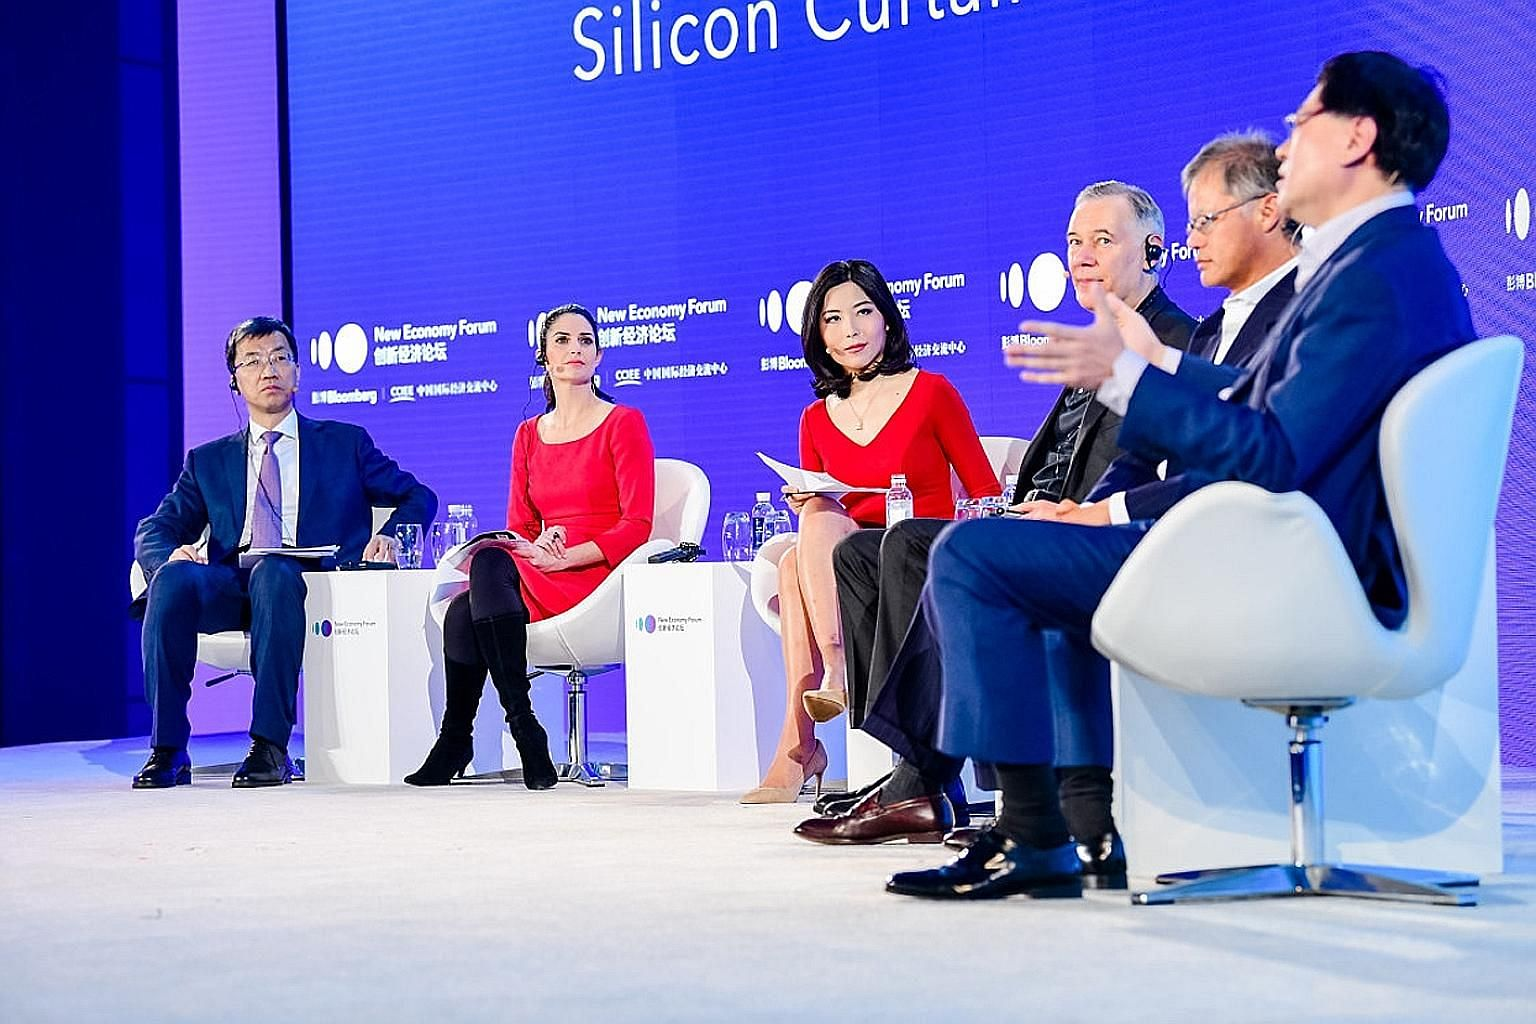 Lenovo chief executive Yang Yuanqing (far right) speaking at a panel discussion at the Bloomberg New Economy Forum in Beijing yesterday. With him were (from left) Mr Huai Jinpeng, executive vice-president of China Association for Science and Technolo